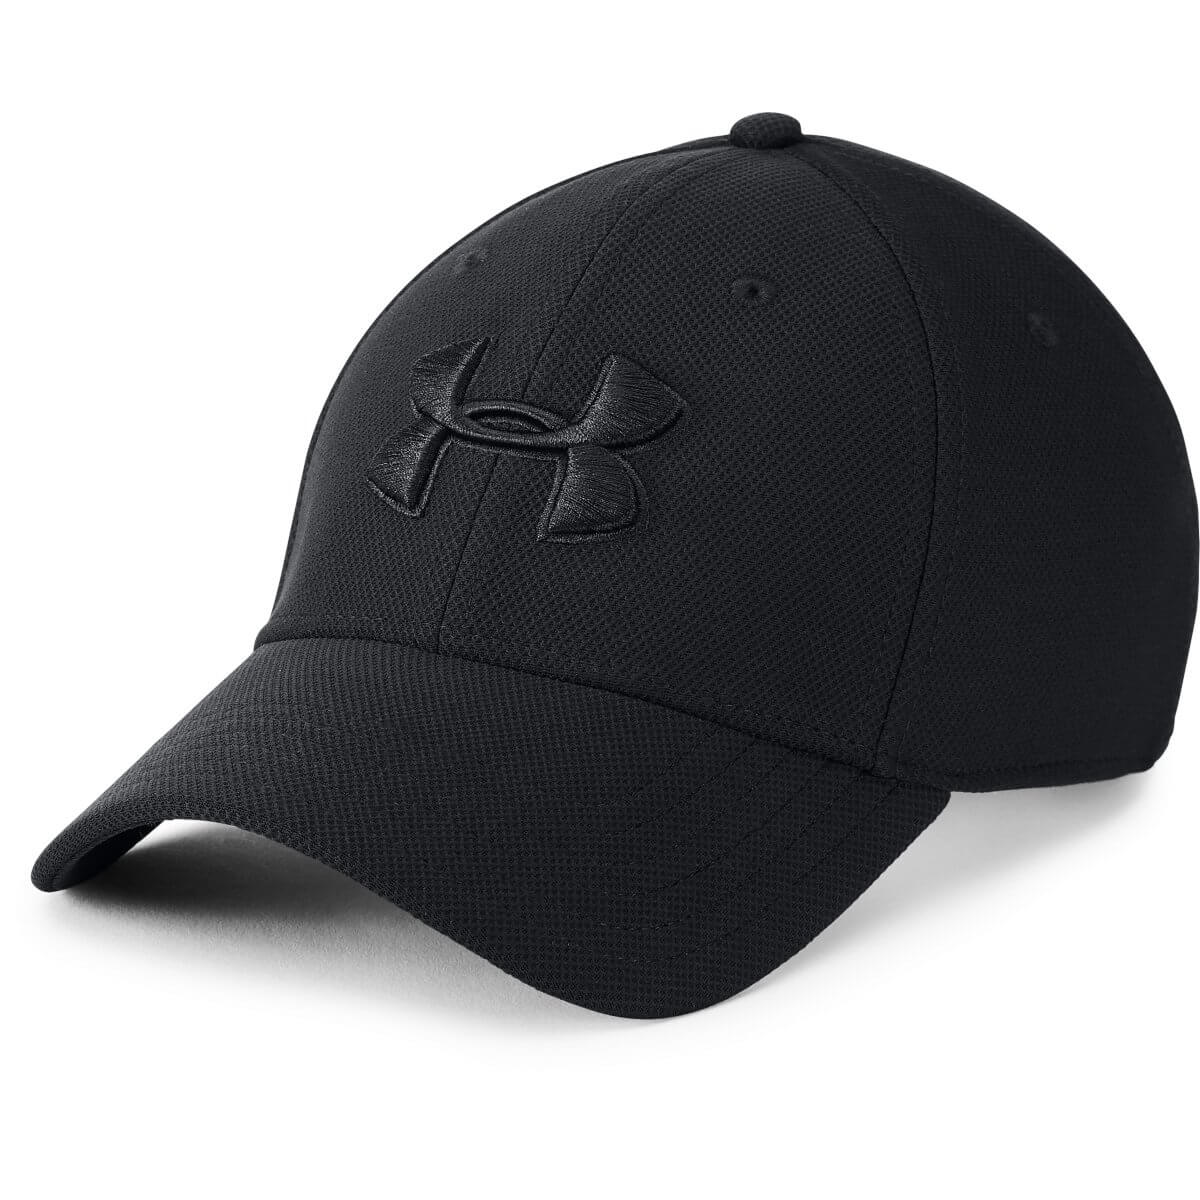 Under Armour Šiltovka Men's Blitzing 3.0 Cap BlackBlack LXL